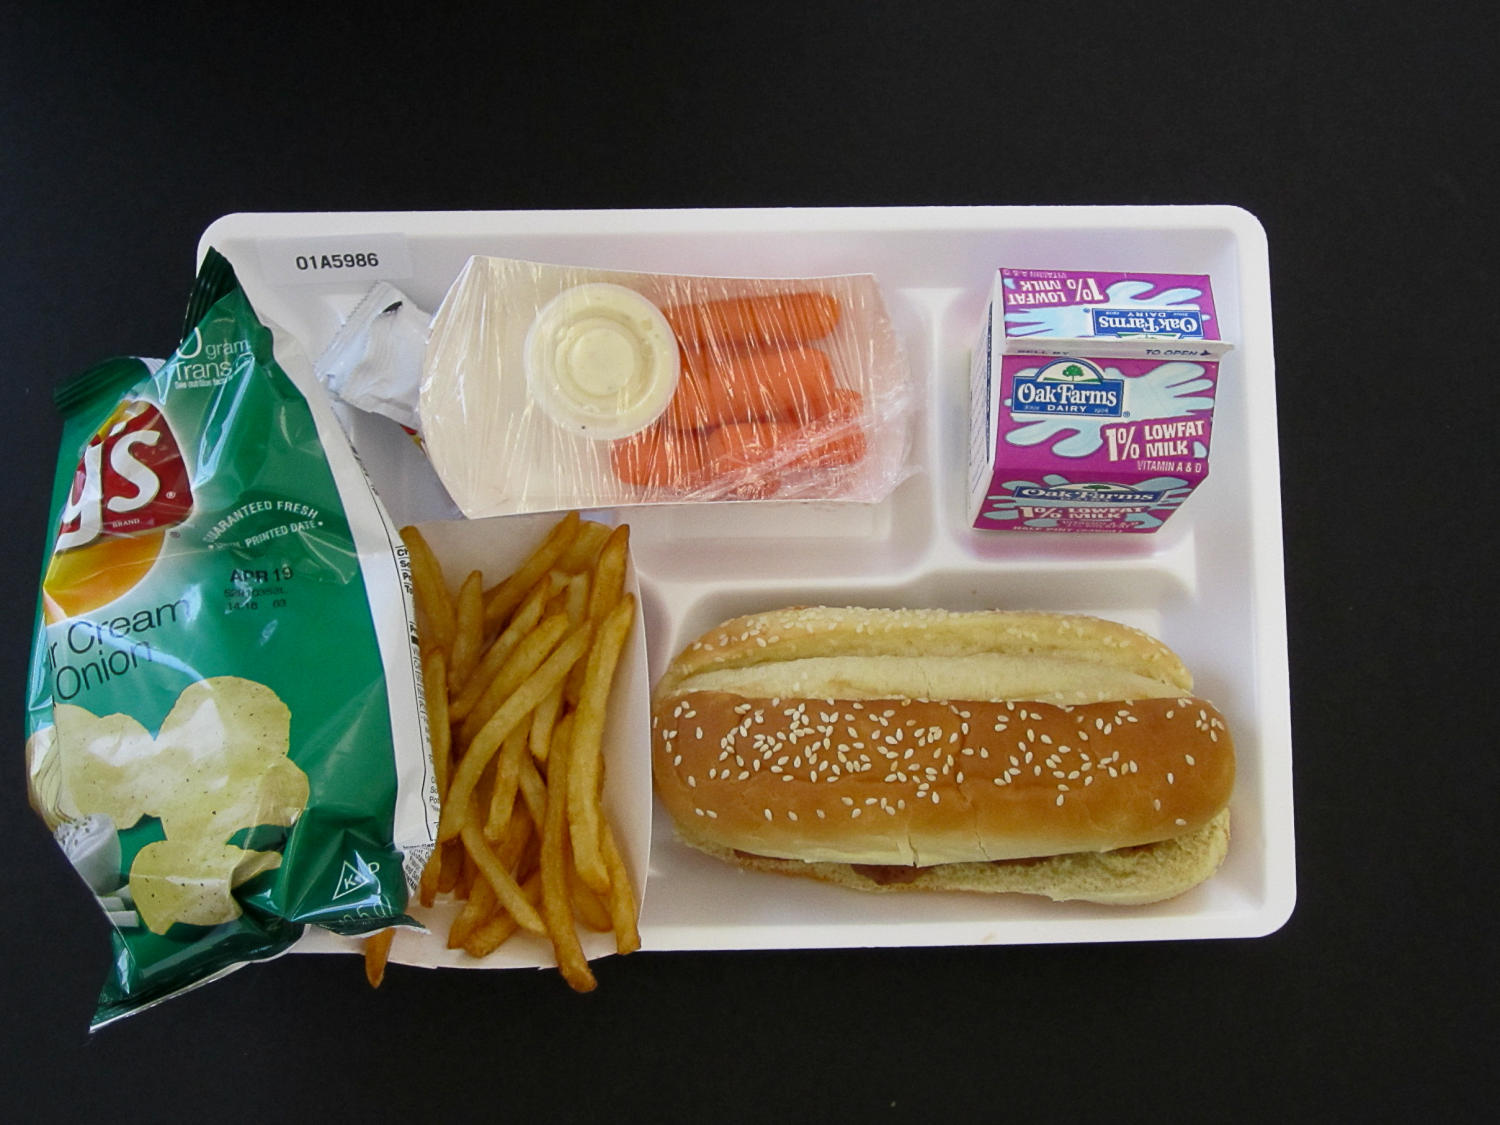 Student Lunch Tray: 01_20110413_01A5986                                                                                                      [Sequence #]: 1 of 2